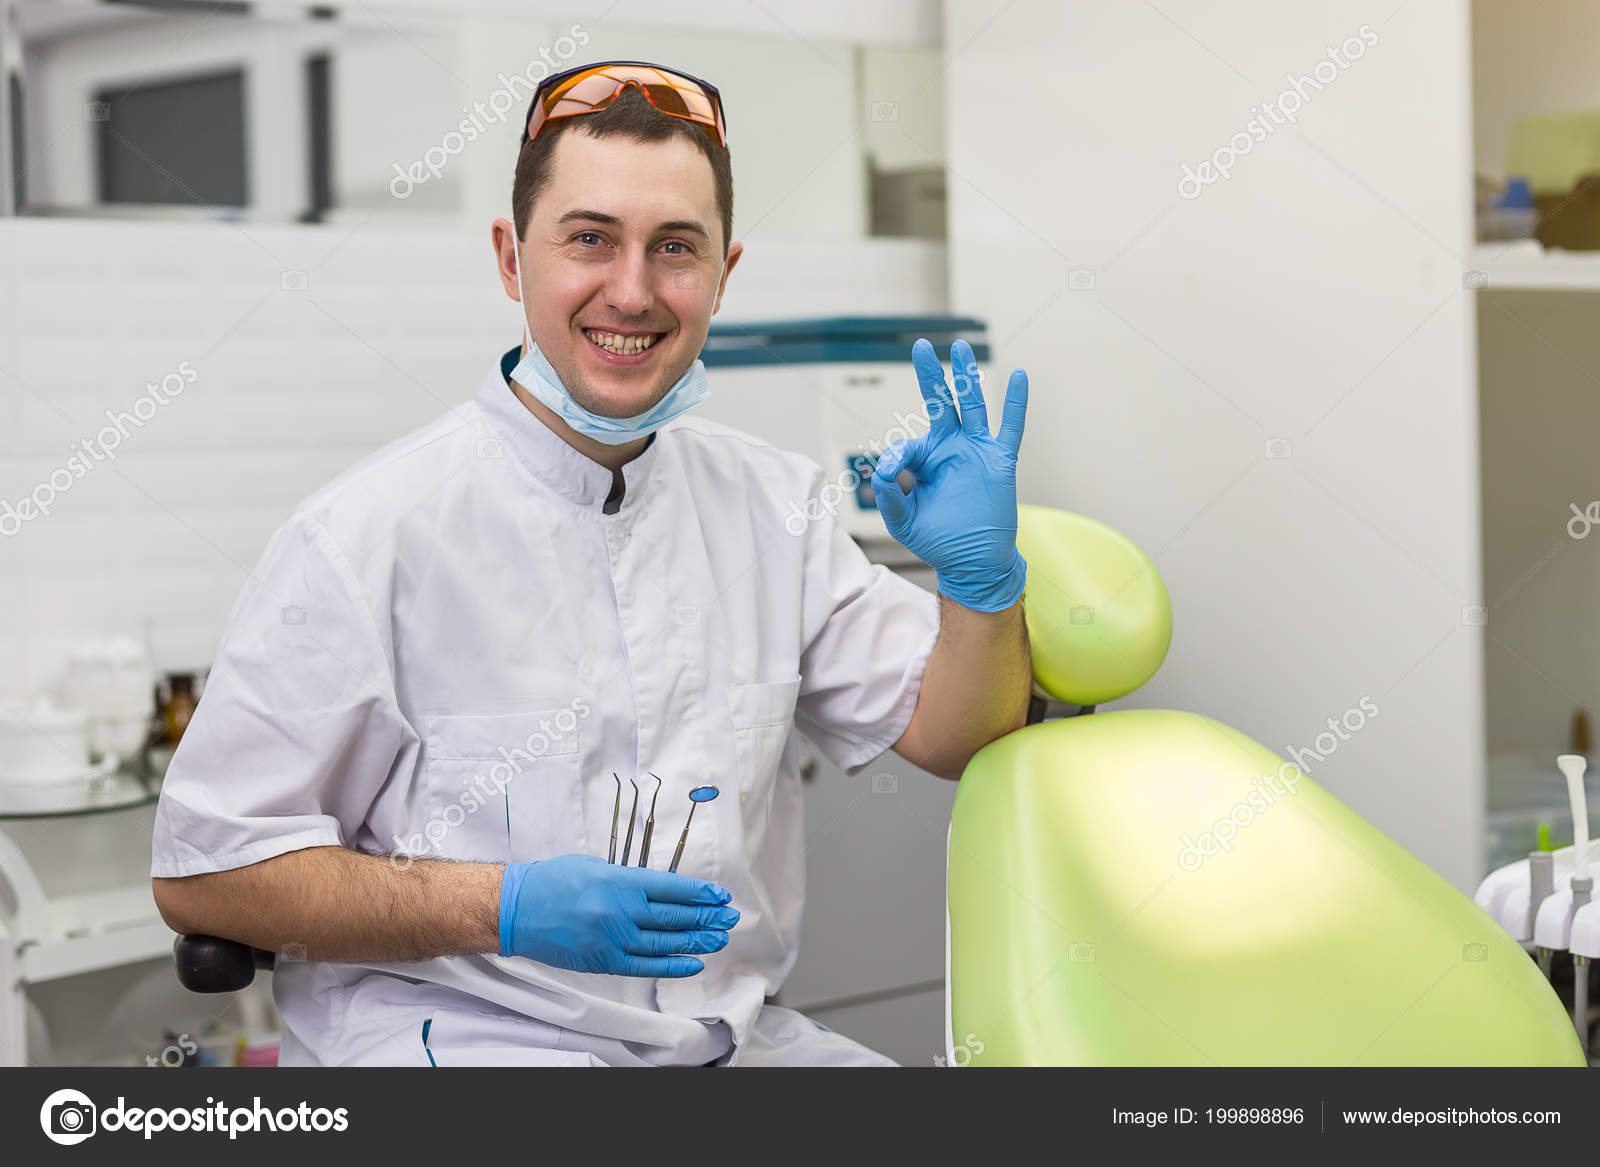 Male Dentist Standing Medical Office Background Healthcare